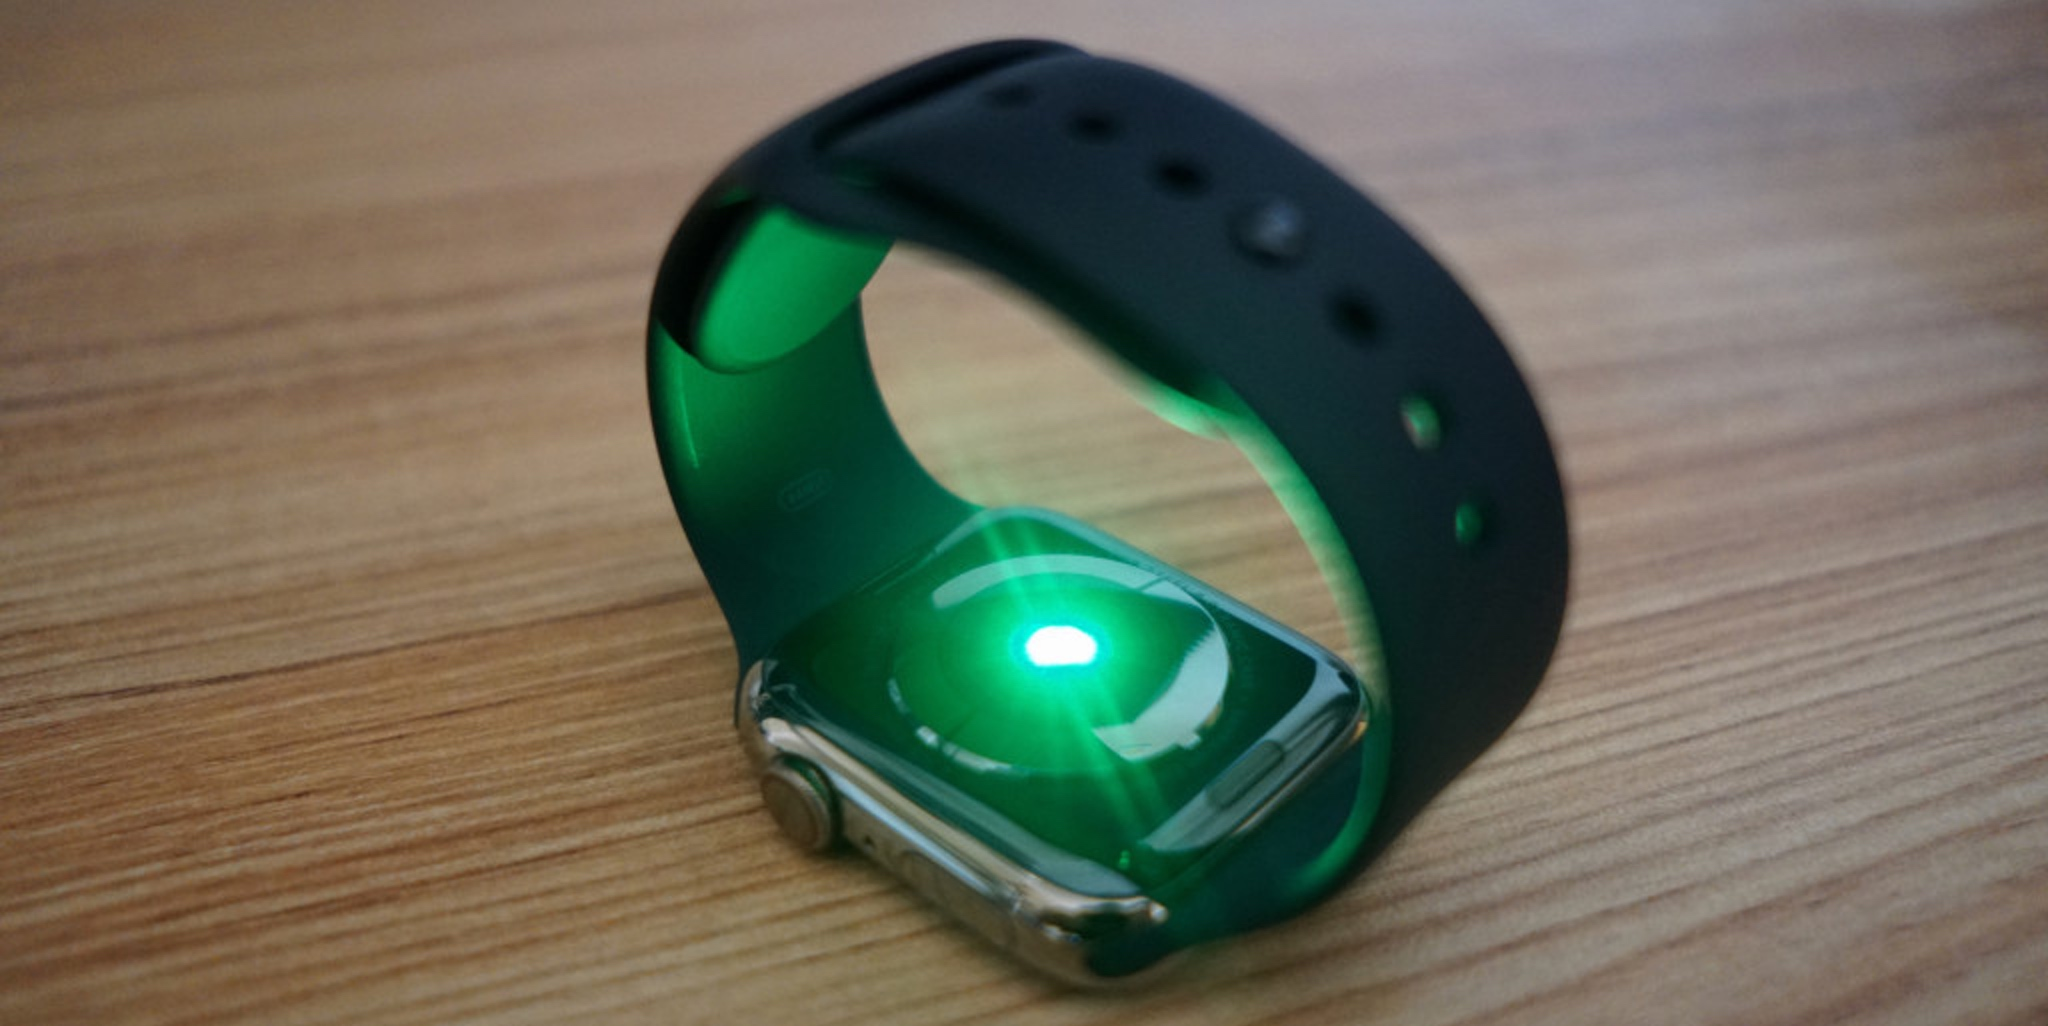 Report claims Huawei tried to copy Apple Watch heart rate sensor by asking Apple supplier to share its secrets